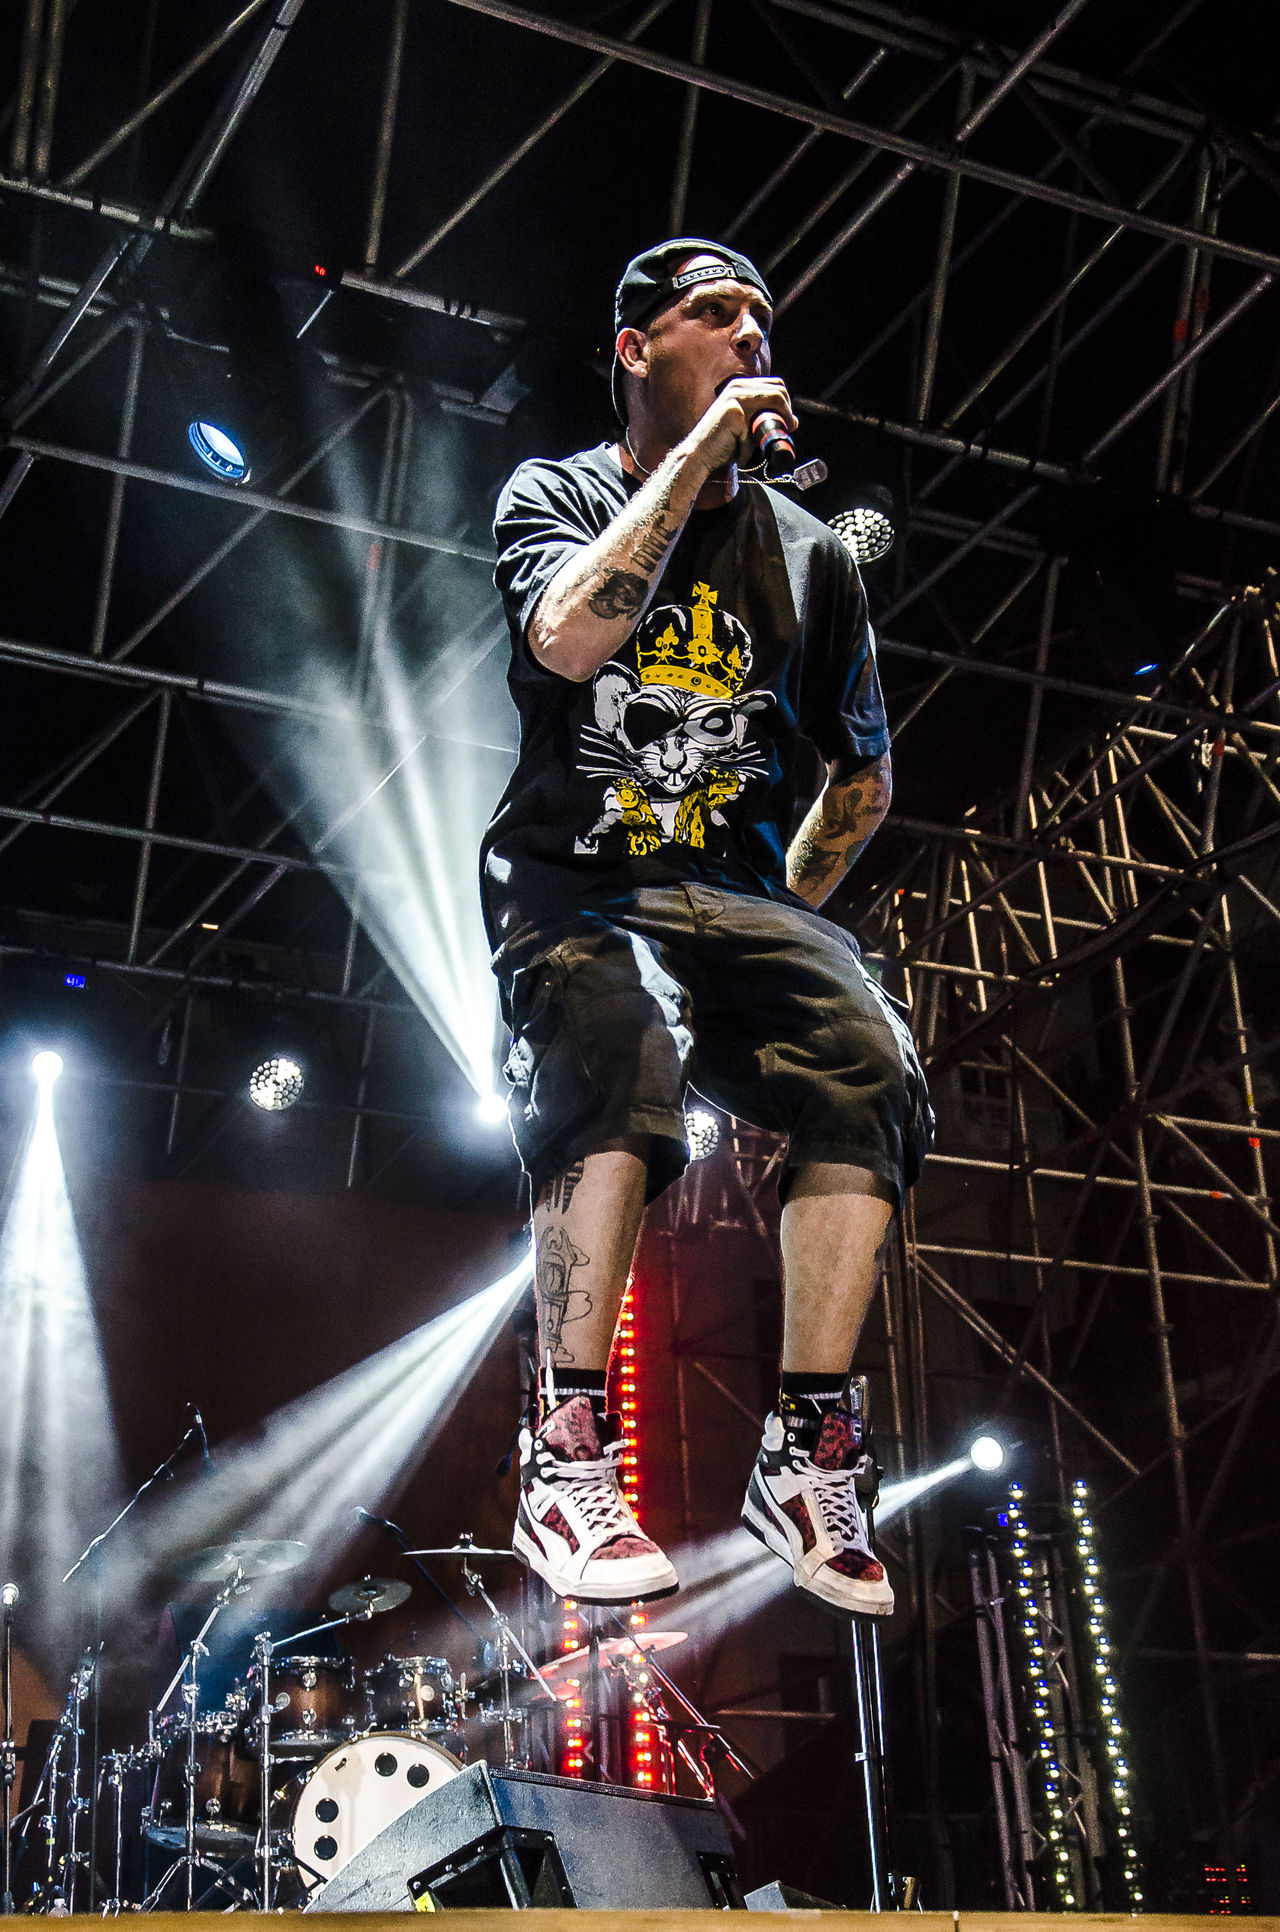 Clementino Cantante Concert Fly Flying Lights Live LiveMusic Livemusicphotography Low Angle View Music Musician One Man Only One Person Rap Rapper Show Singer  Stage Stage Light Stagephotography Artist EyeEmNewHere